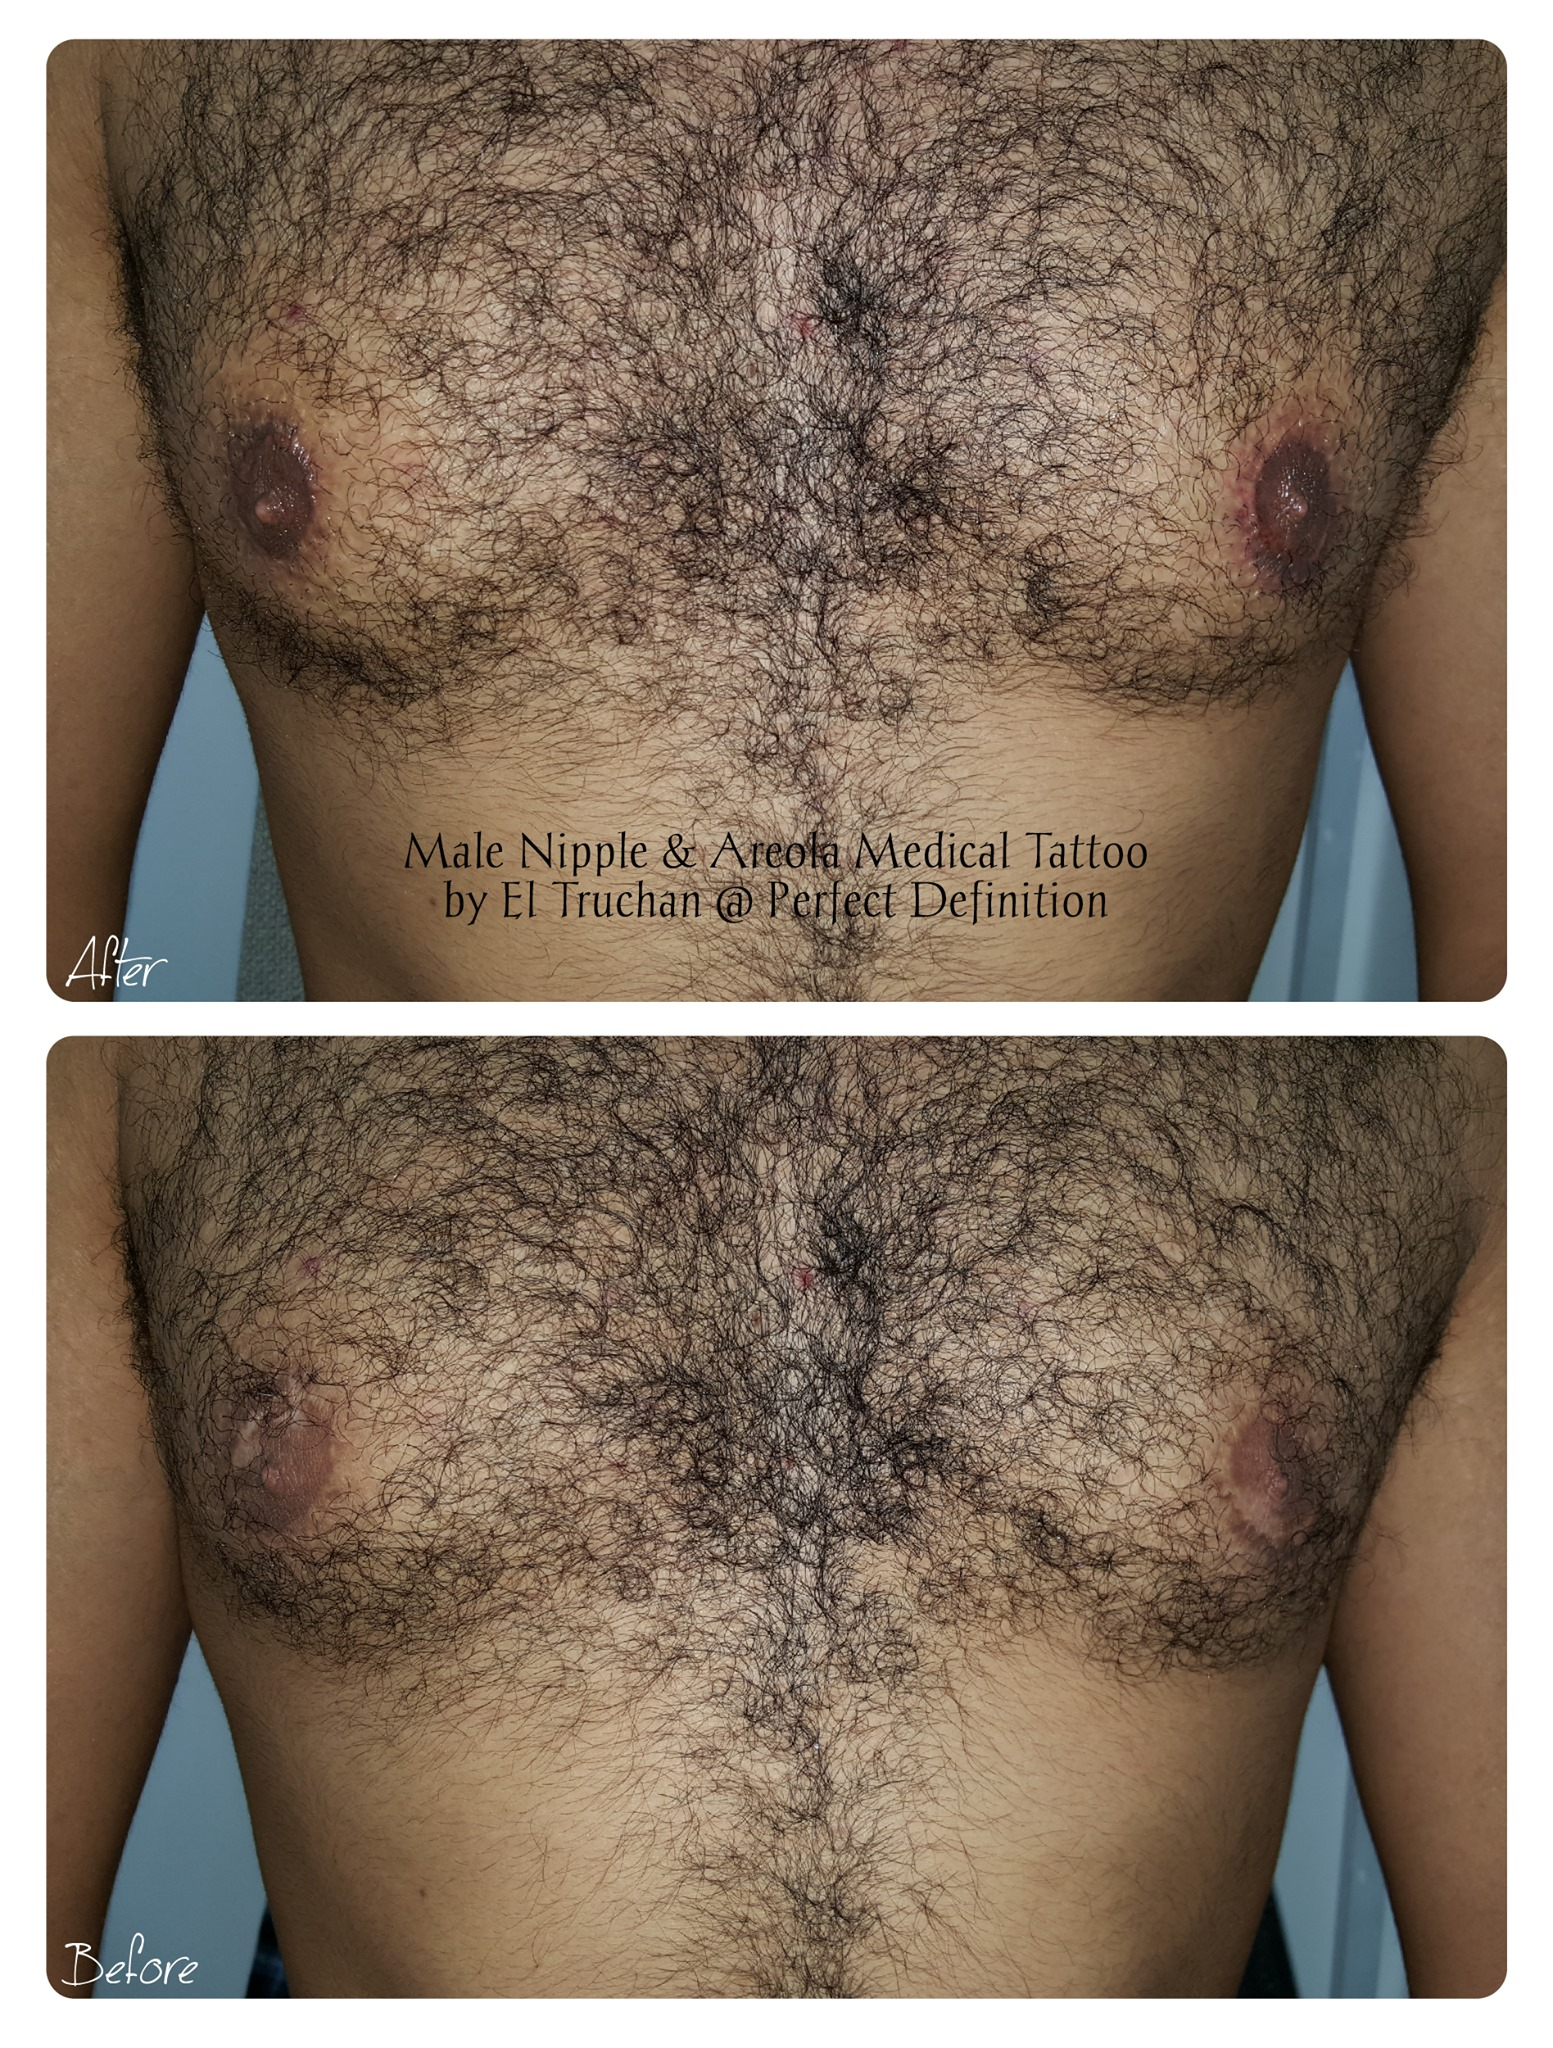 Male Nipple & Areola Medical Tattoo by E